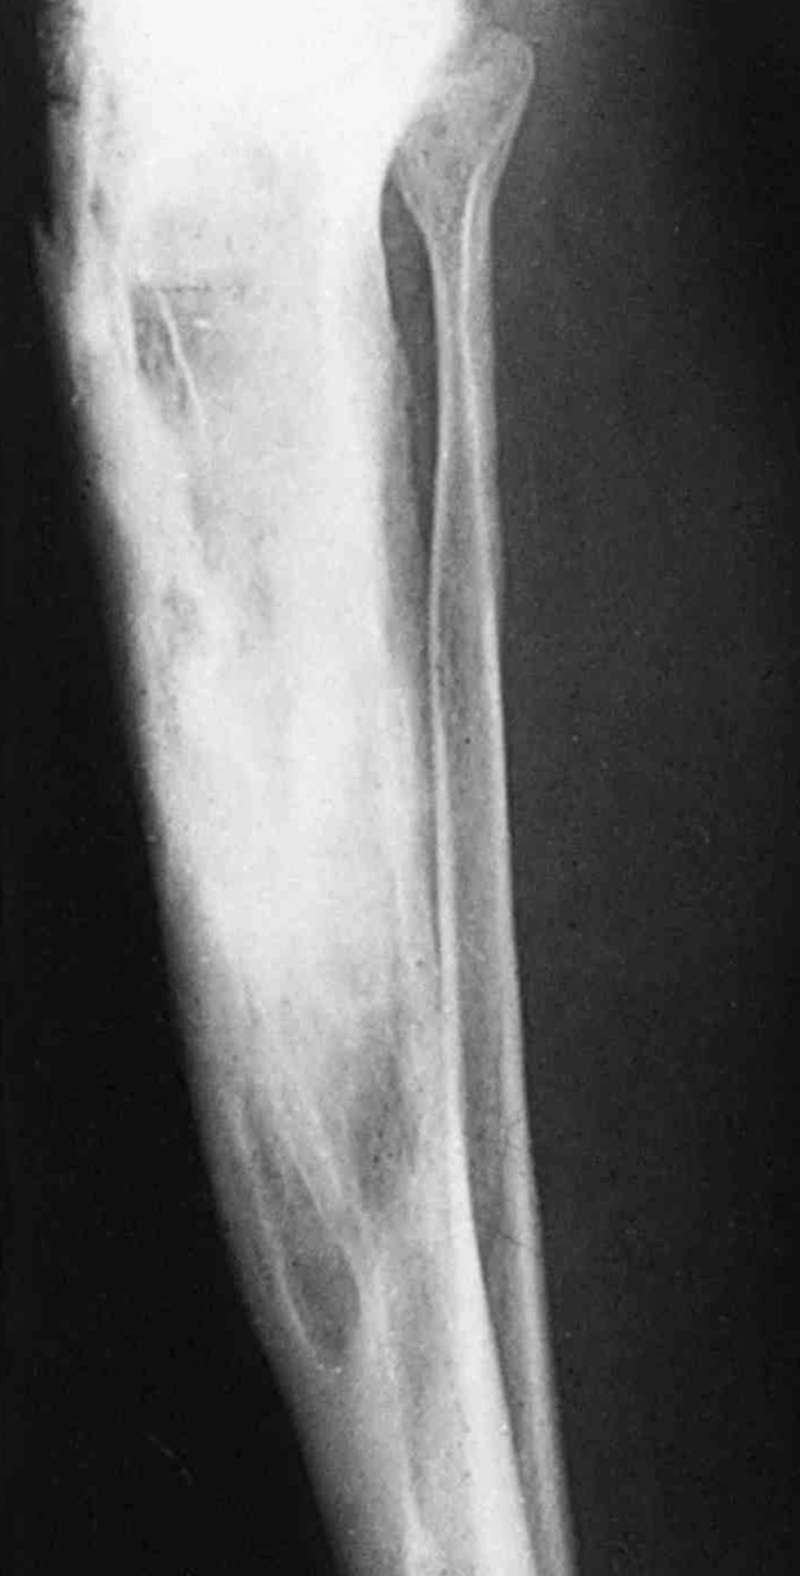 pagets disease Paget's disease is a chronic condition of bone characterized by disorder of the normal bone remodeling process normal bone has a balance of forces that act to lay down new bone and take up old bone.